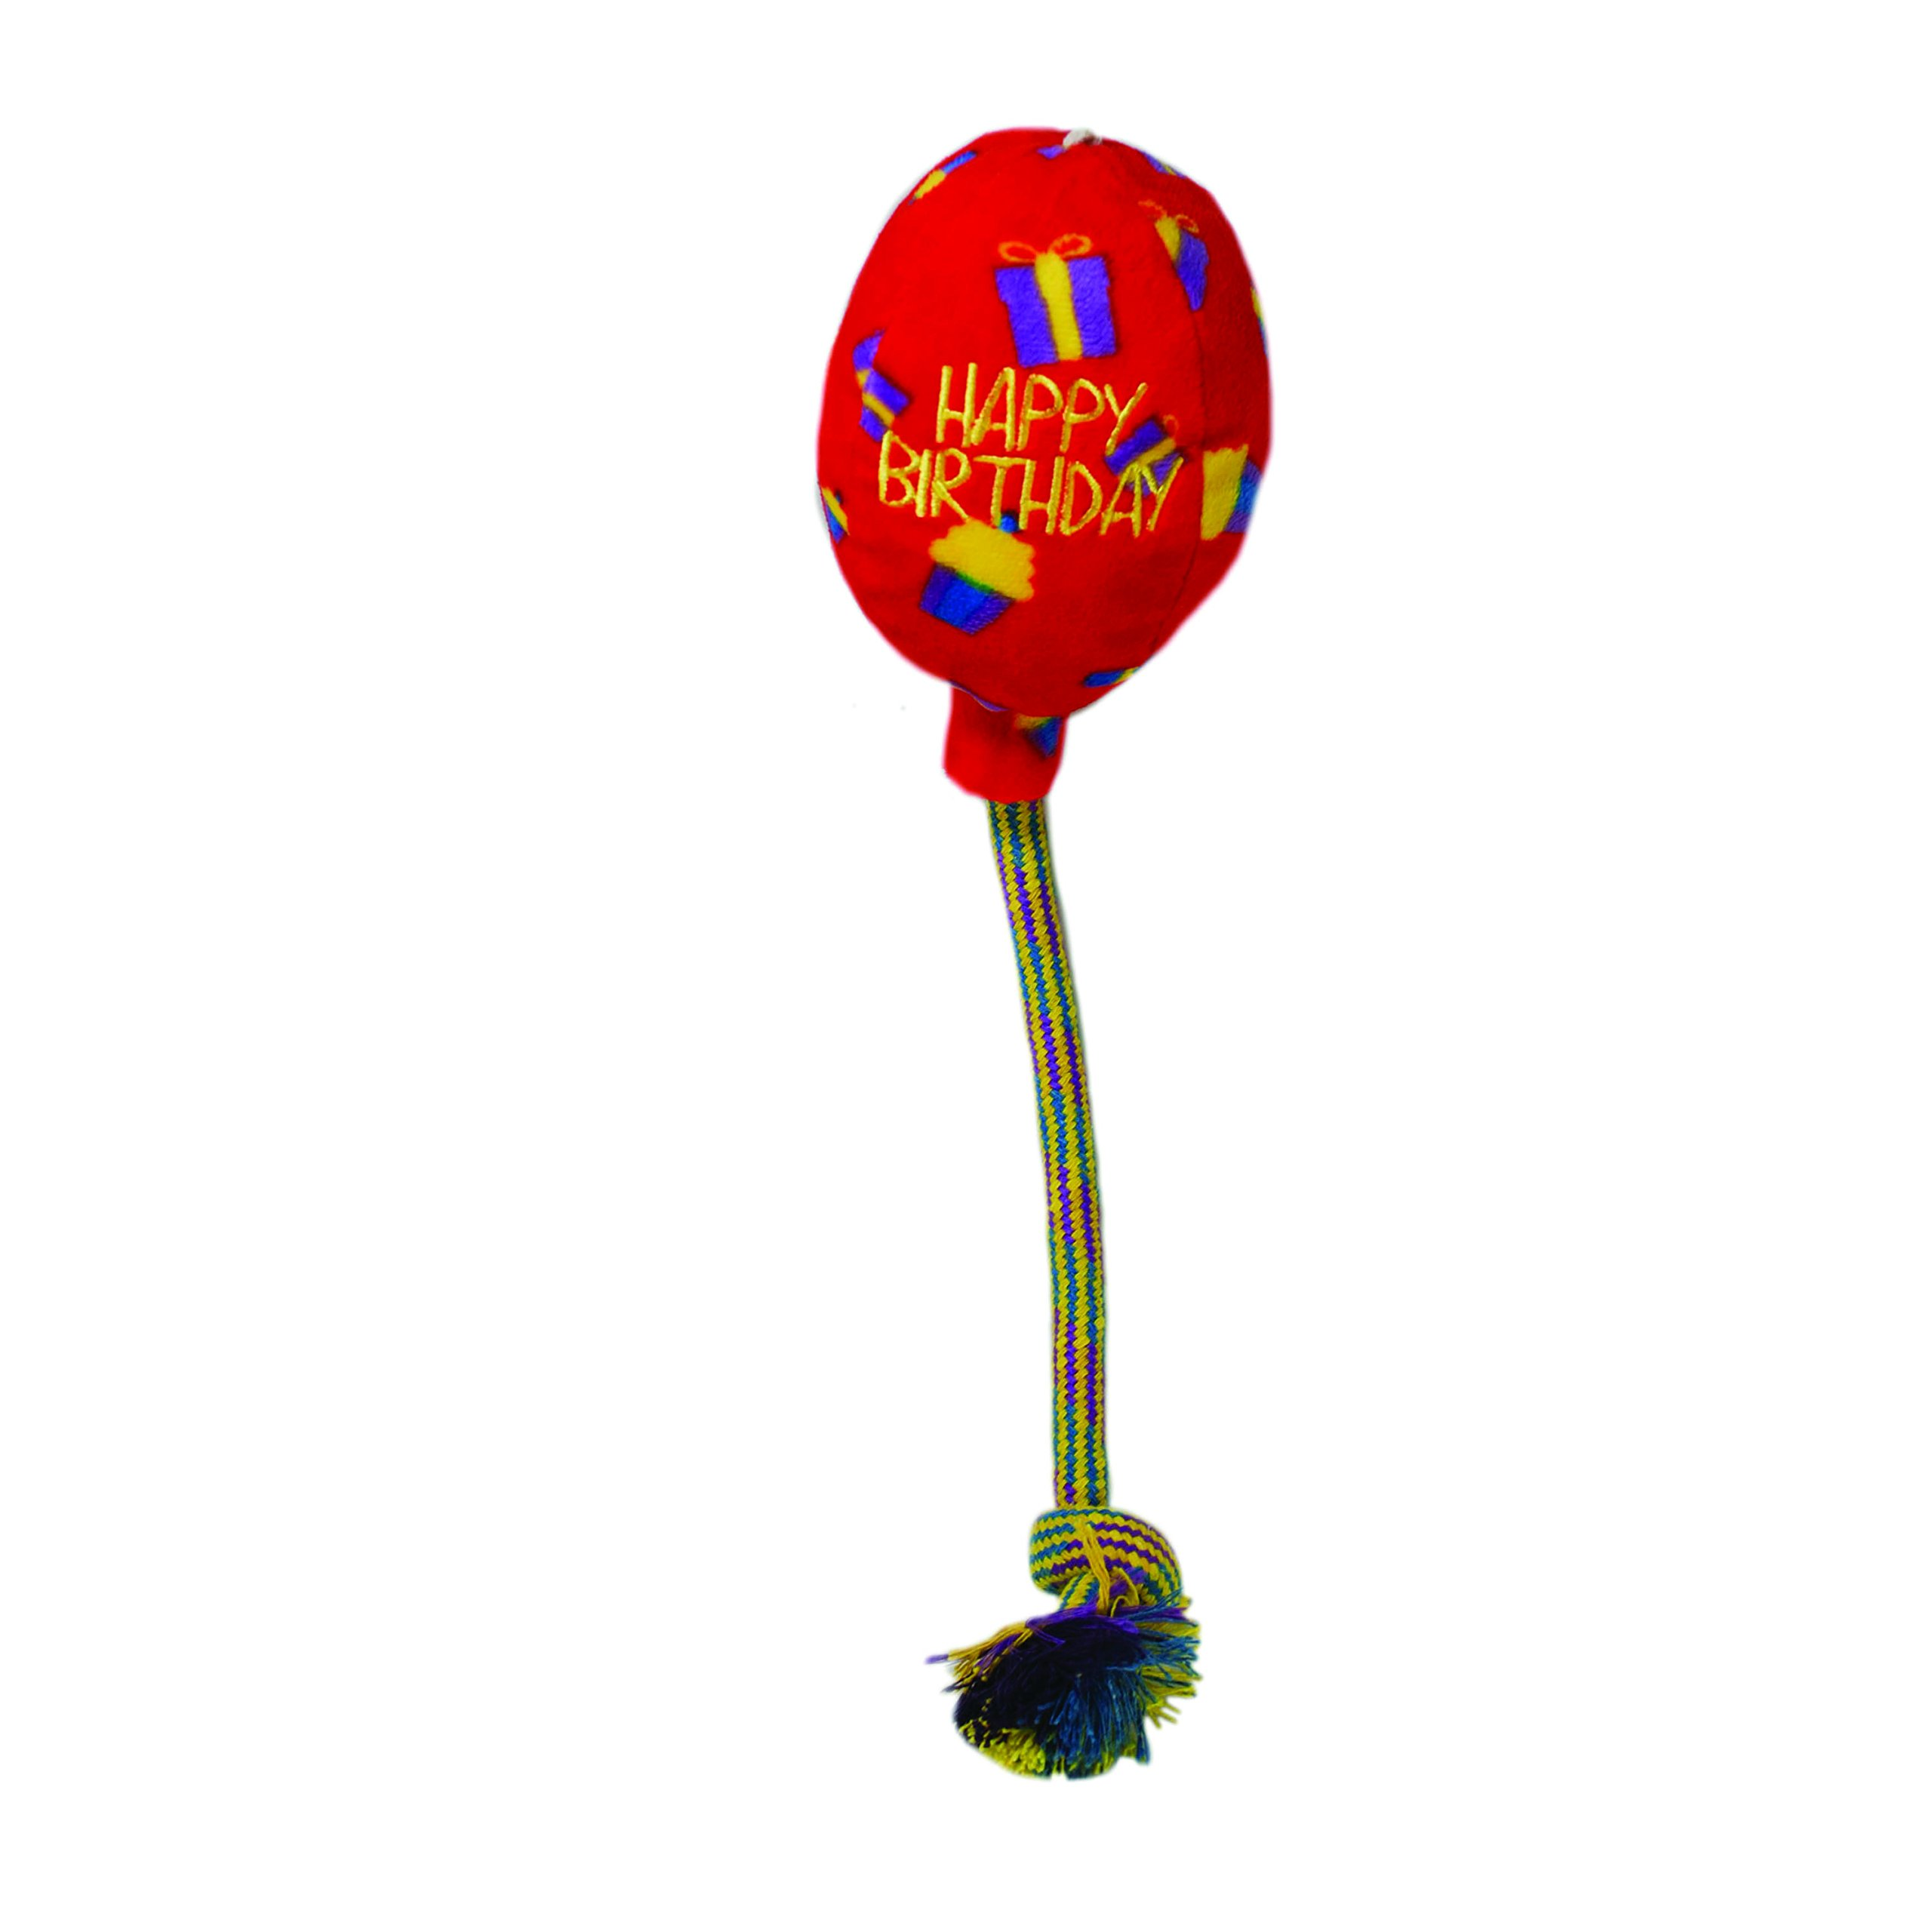 KONG Occasions Birthday Balloon Red Dog Toy, Large